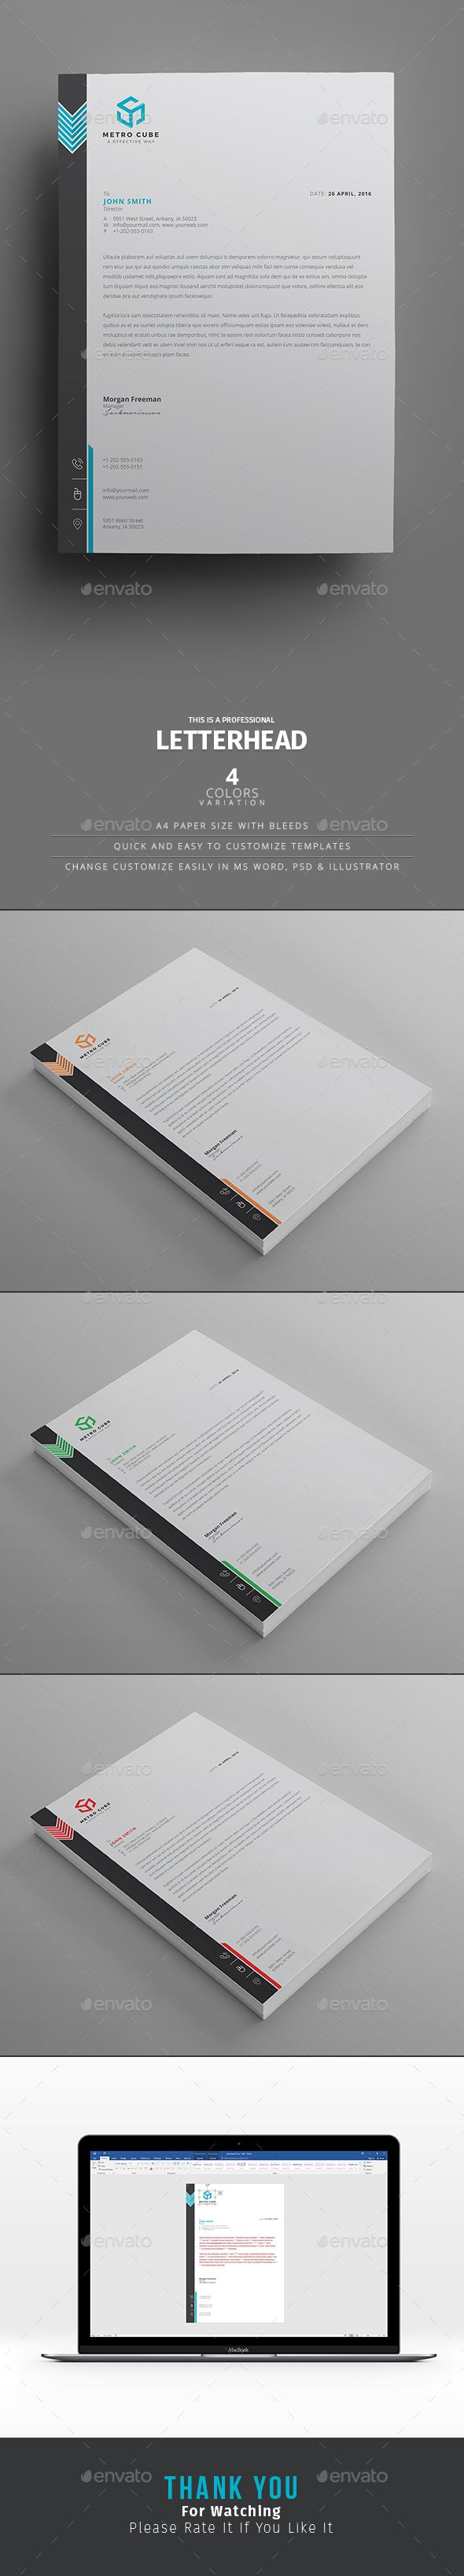 Best 25 Letterhead Ideas On Pinterest Letterhead Design